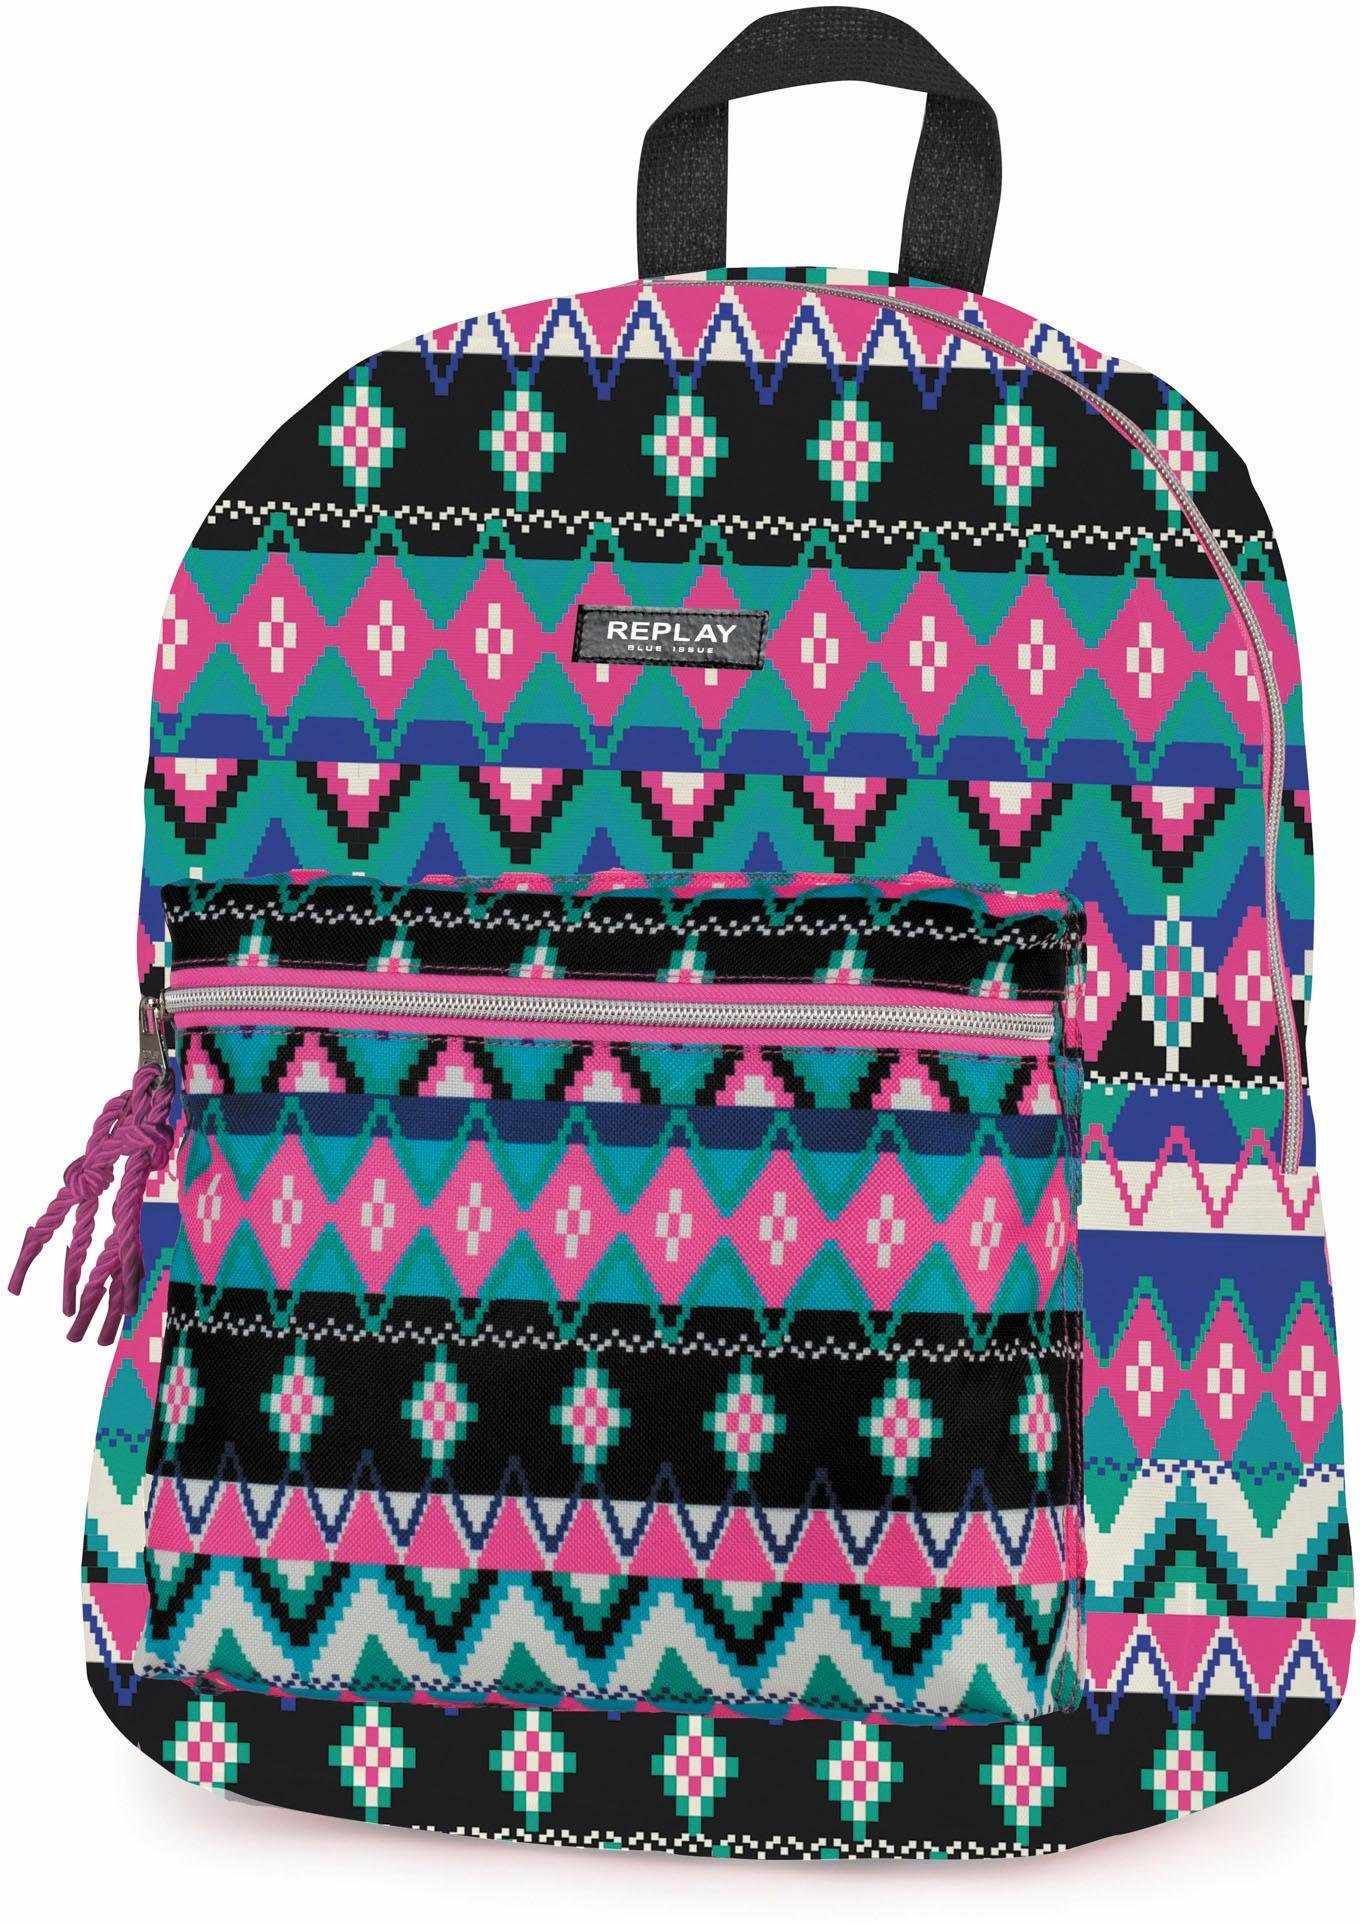 REPLAY Rucksack, »Fashion Girls, pink aztec«